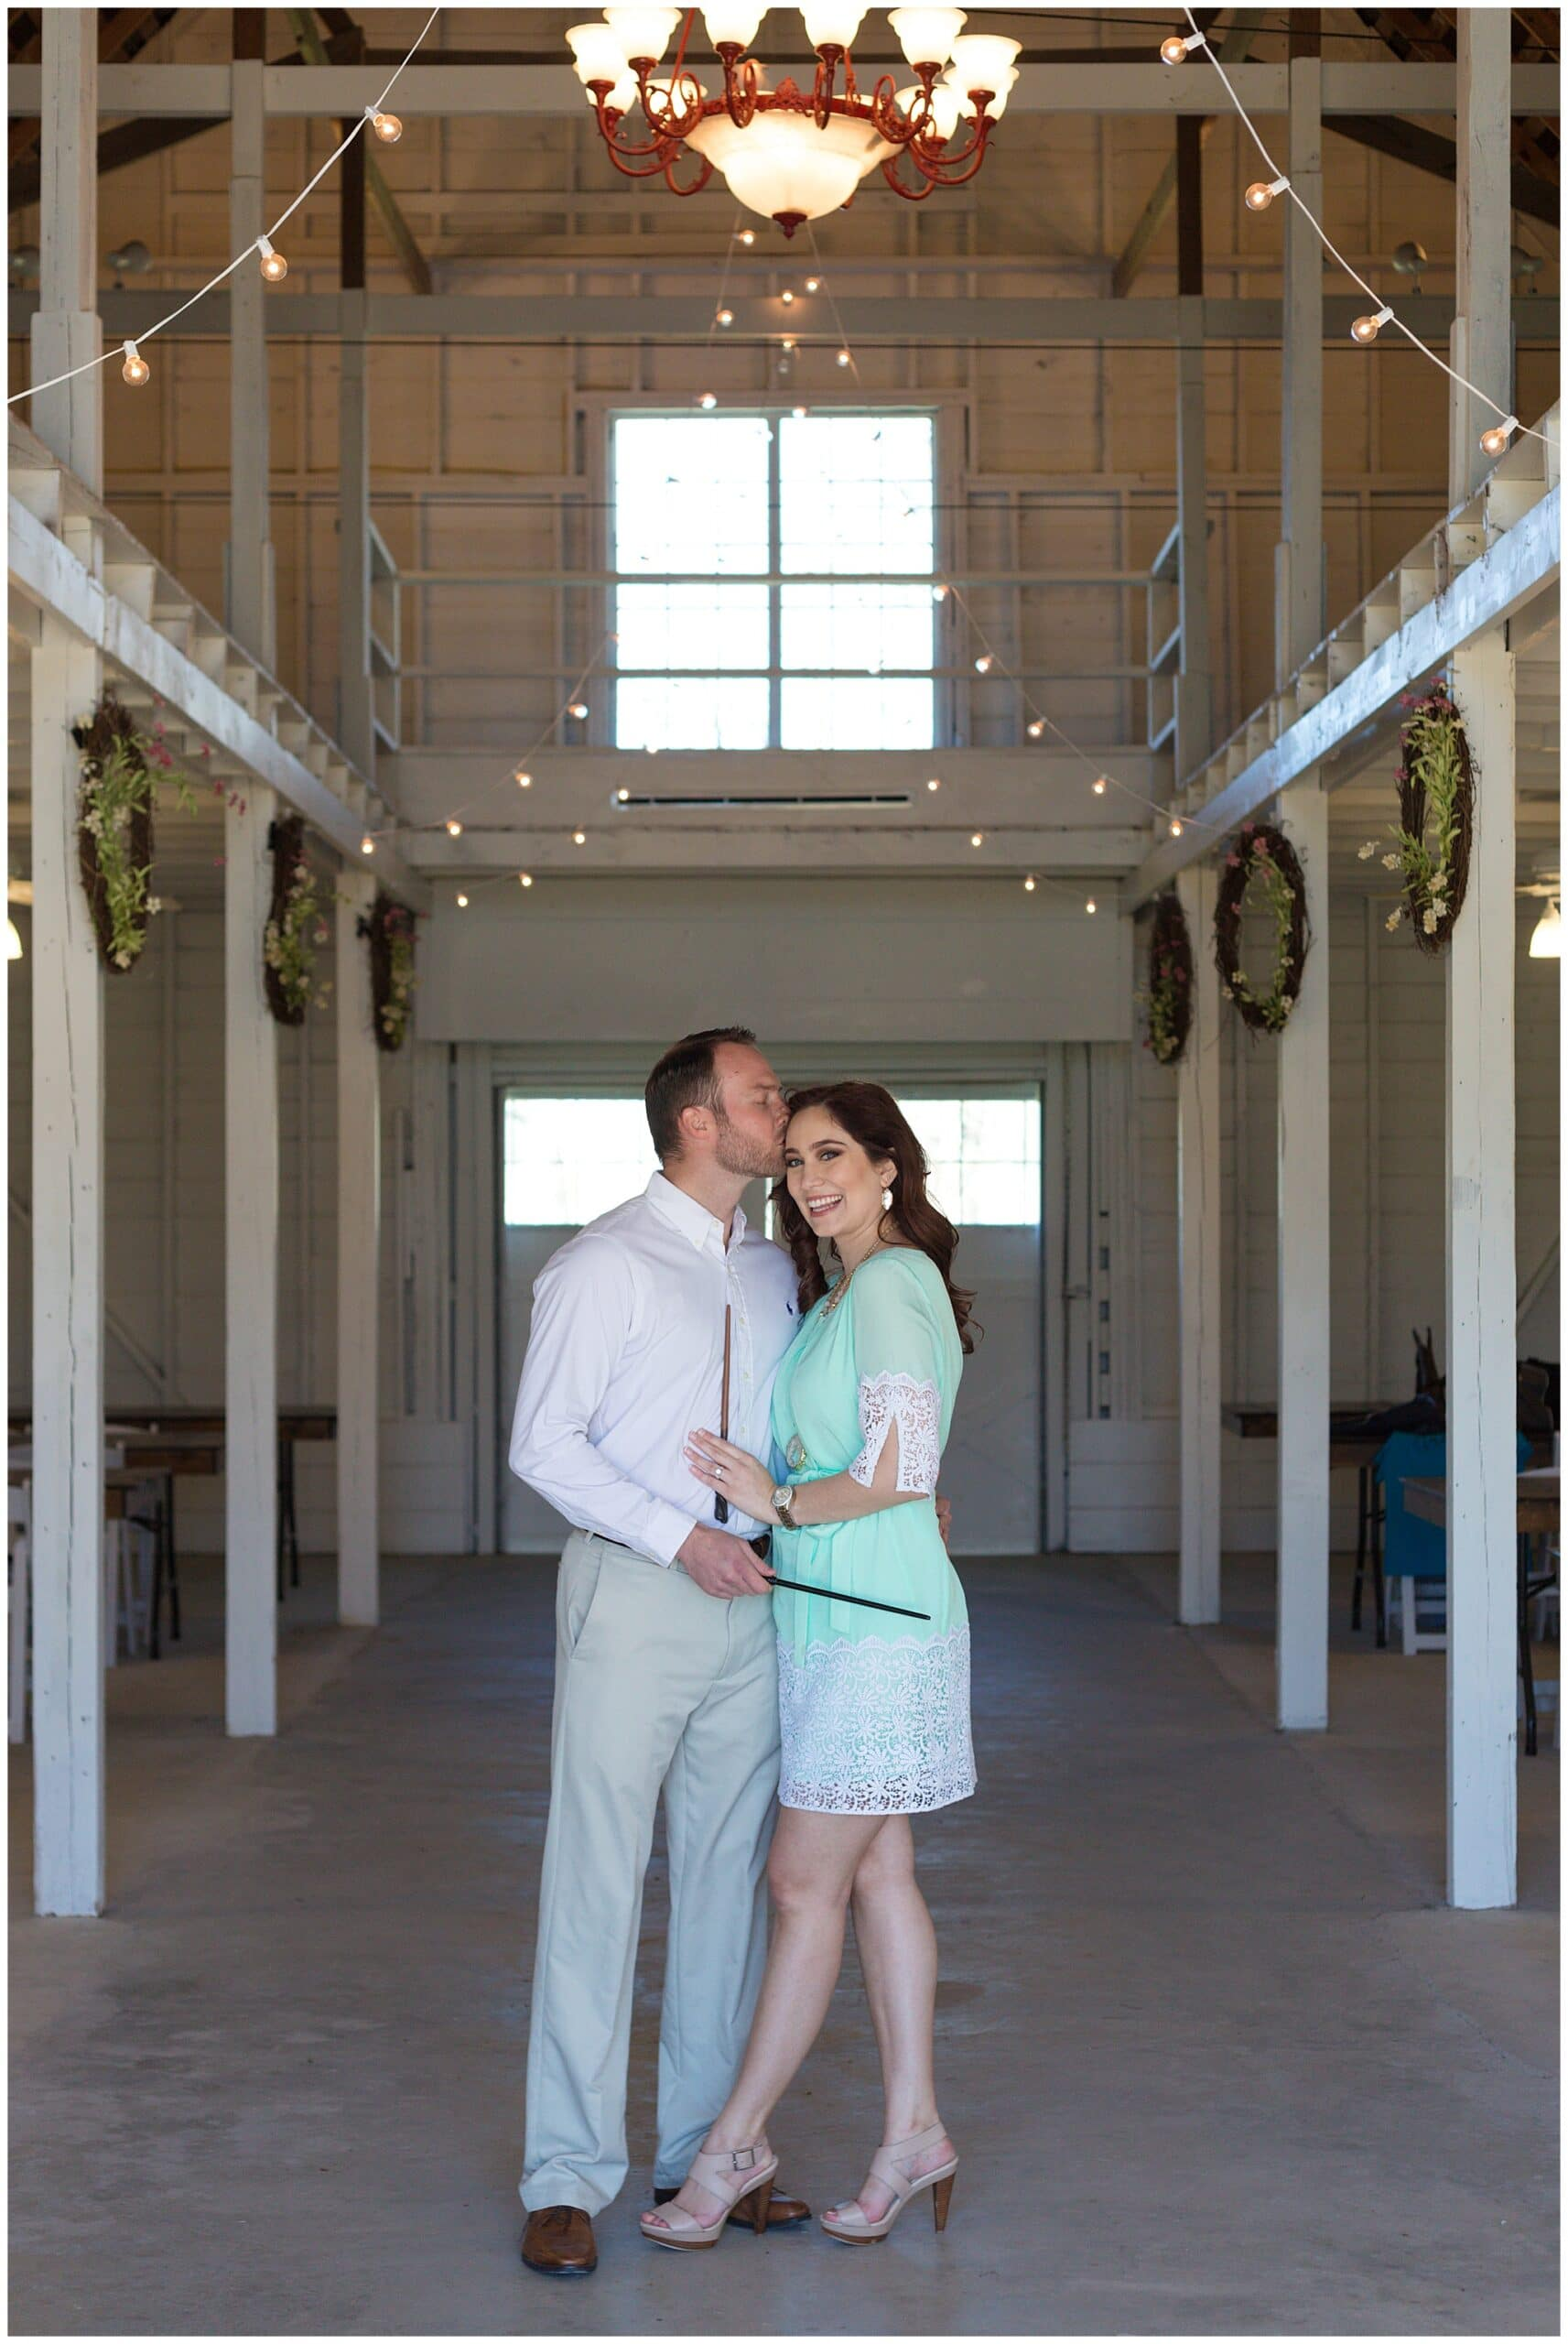 Magical engagements session at the Grand Texana in Houston, Texas photographed by Swish and Click Photography